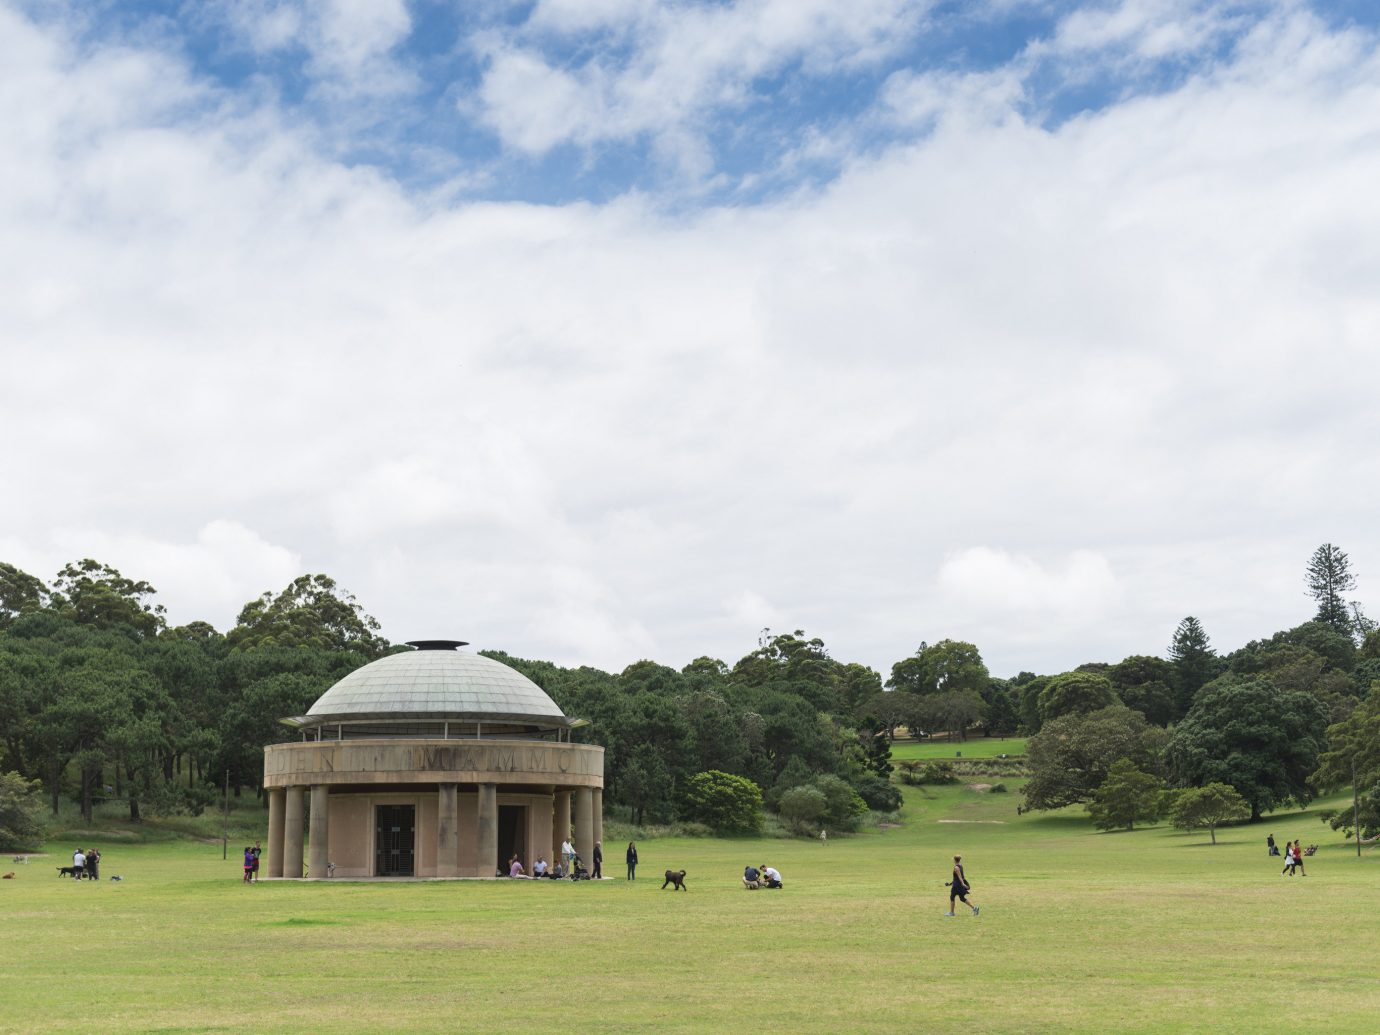 City Outdoors + Adventure Sydney grass outdoor sky tree cloud field grassland daytime park pasture estate plant lawn meadow landscape rural area national trust for places of historic interest or natural beauty house hill stately home Farm tourism day lush